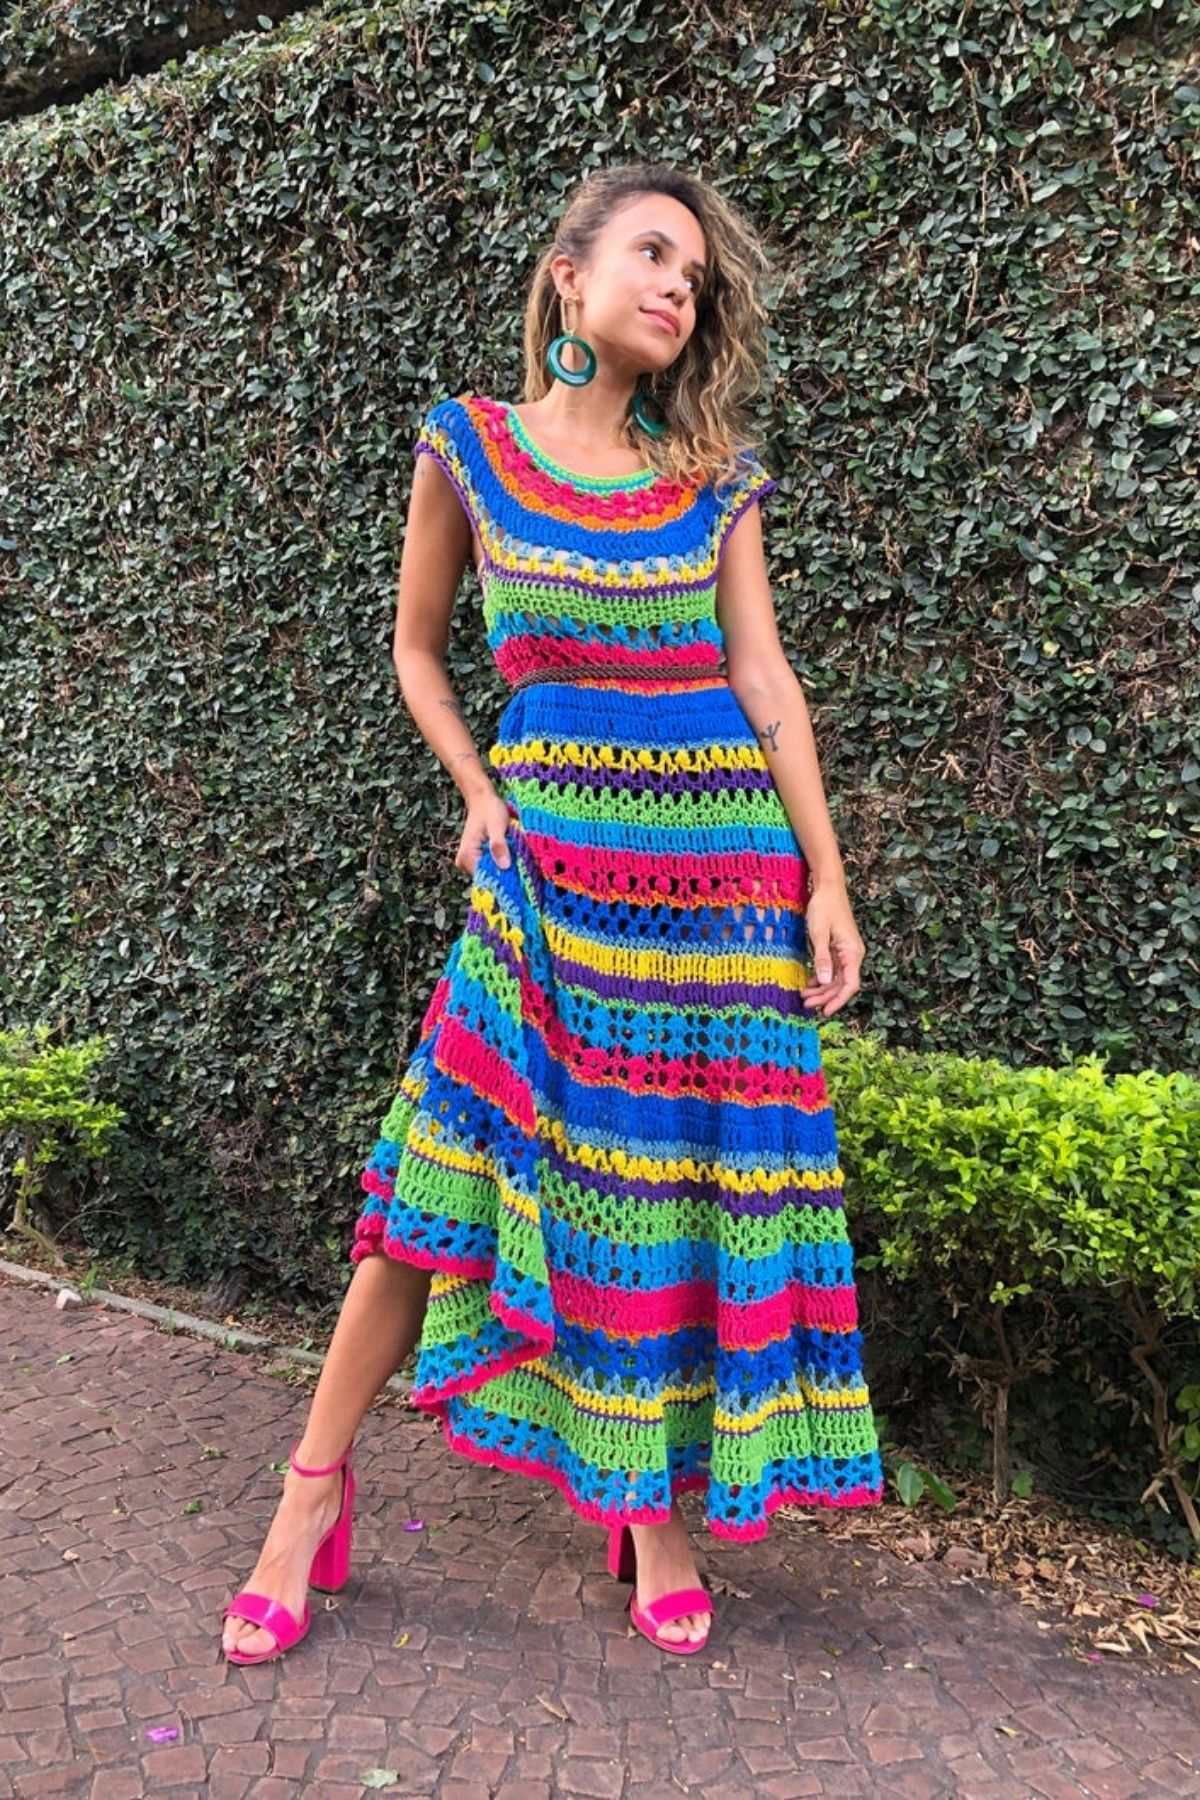 Woman in striped rainbow dress by shrubs